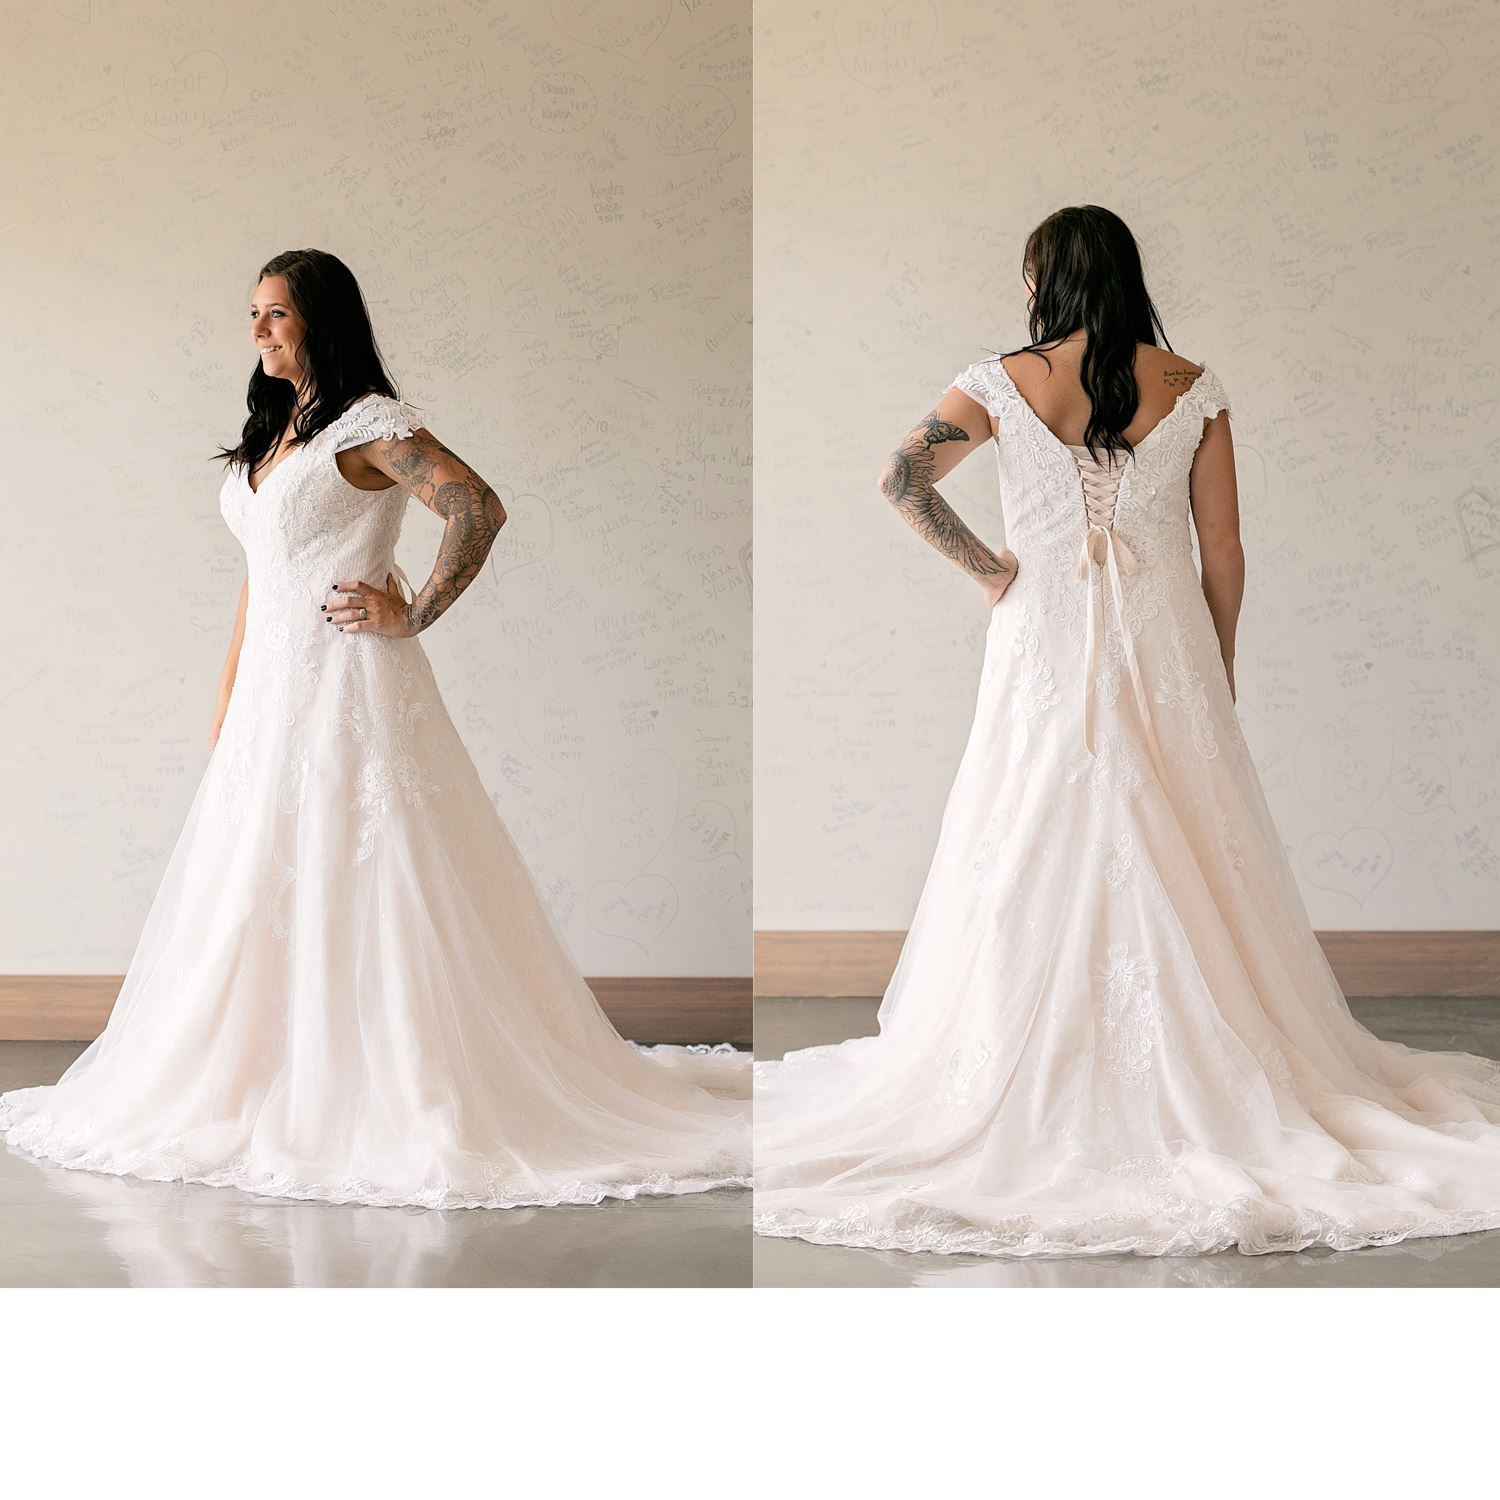 Darcy - Size 18 - Ivory/Champagne - Originally priced $1199 - Sample box price $999